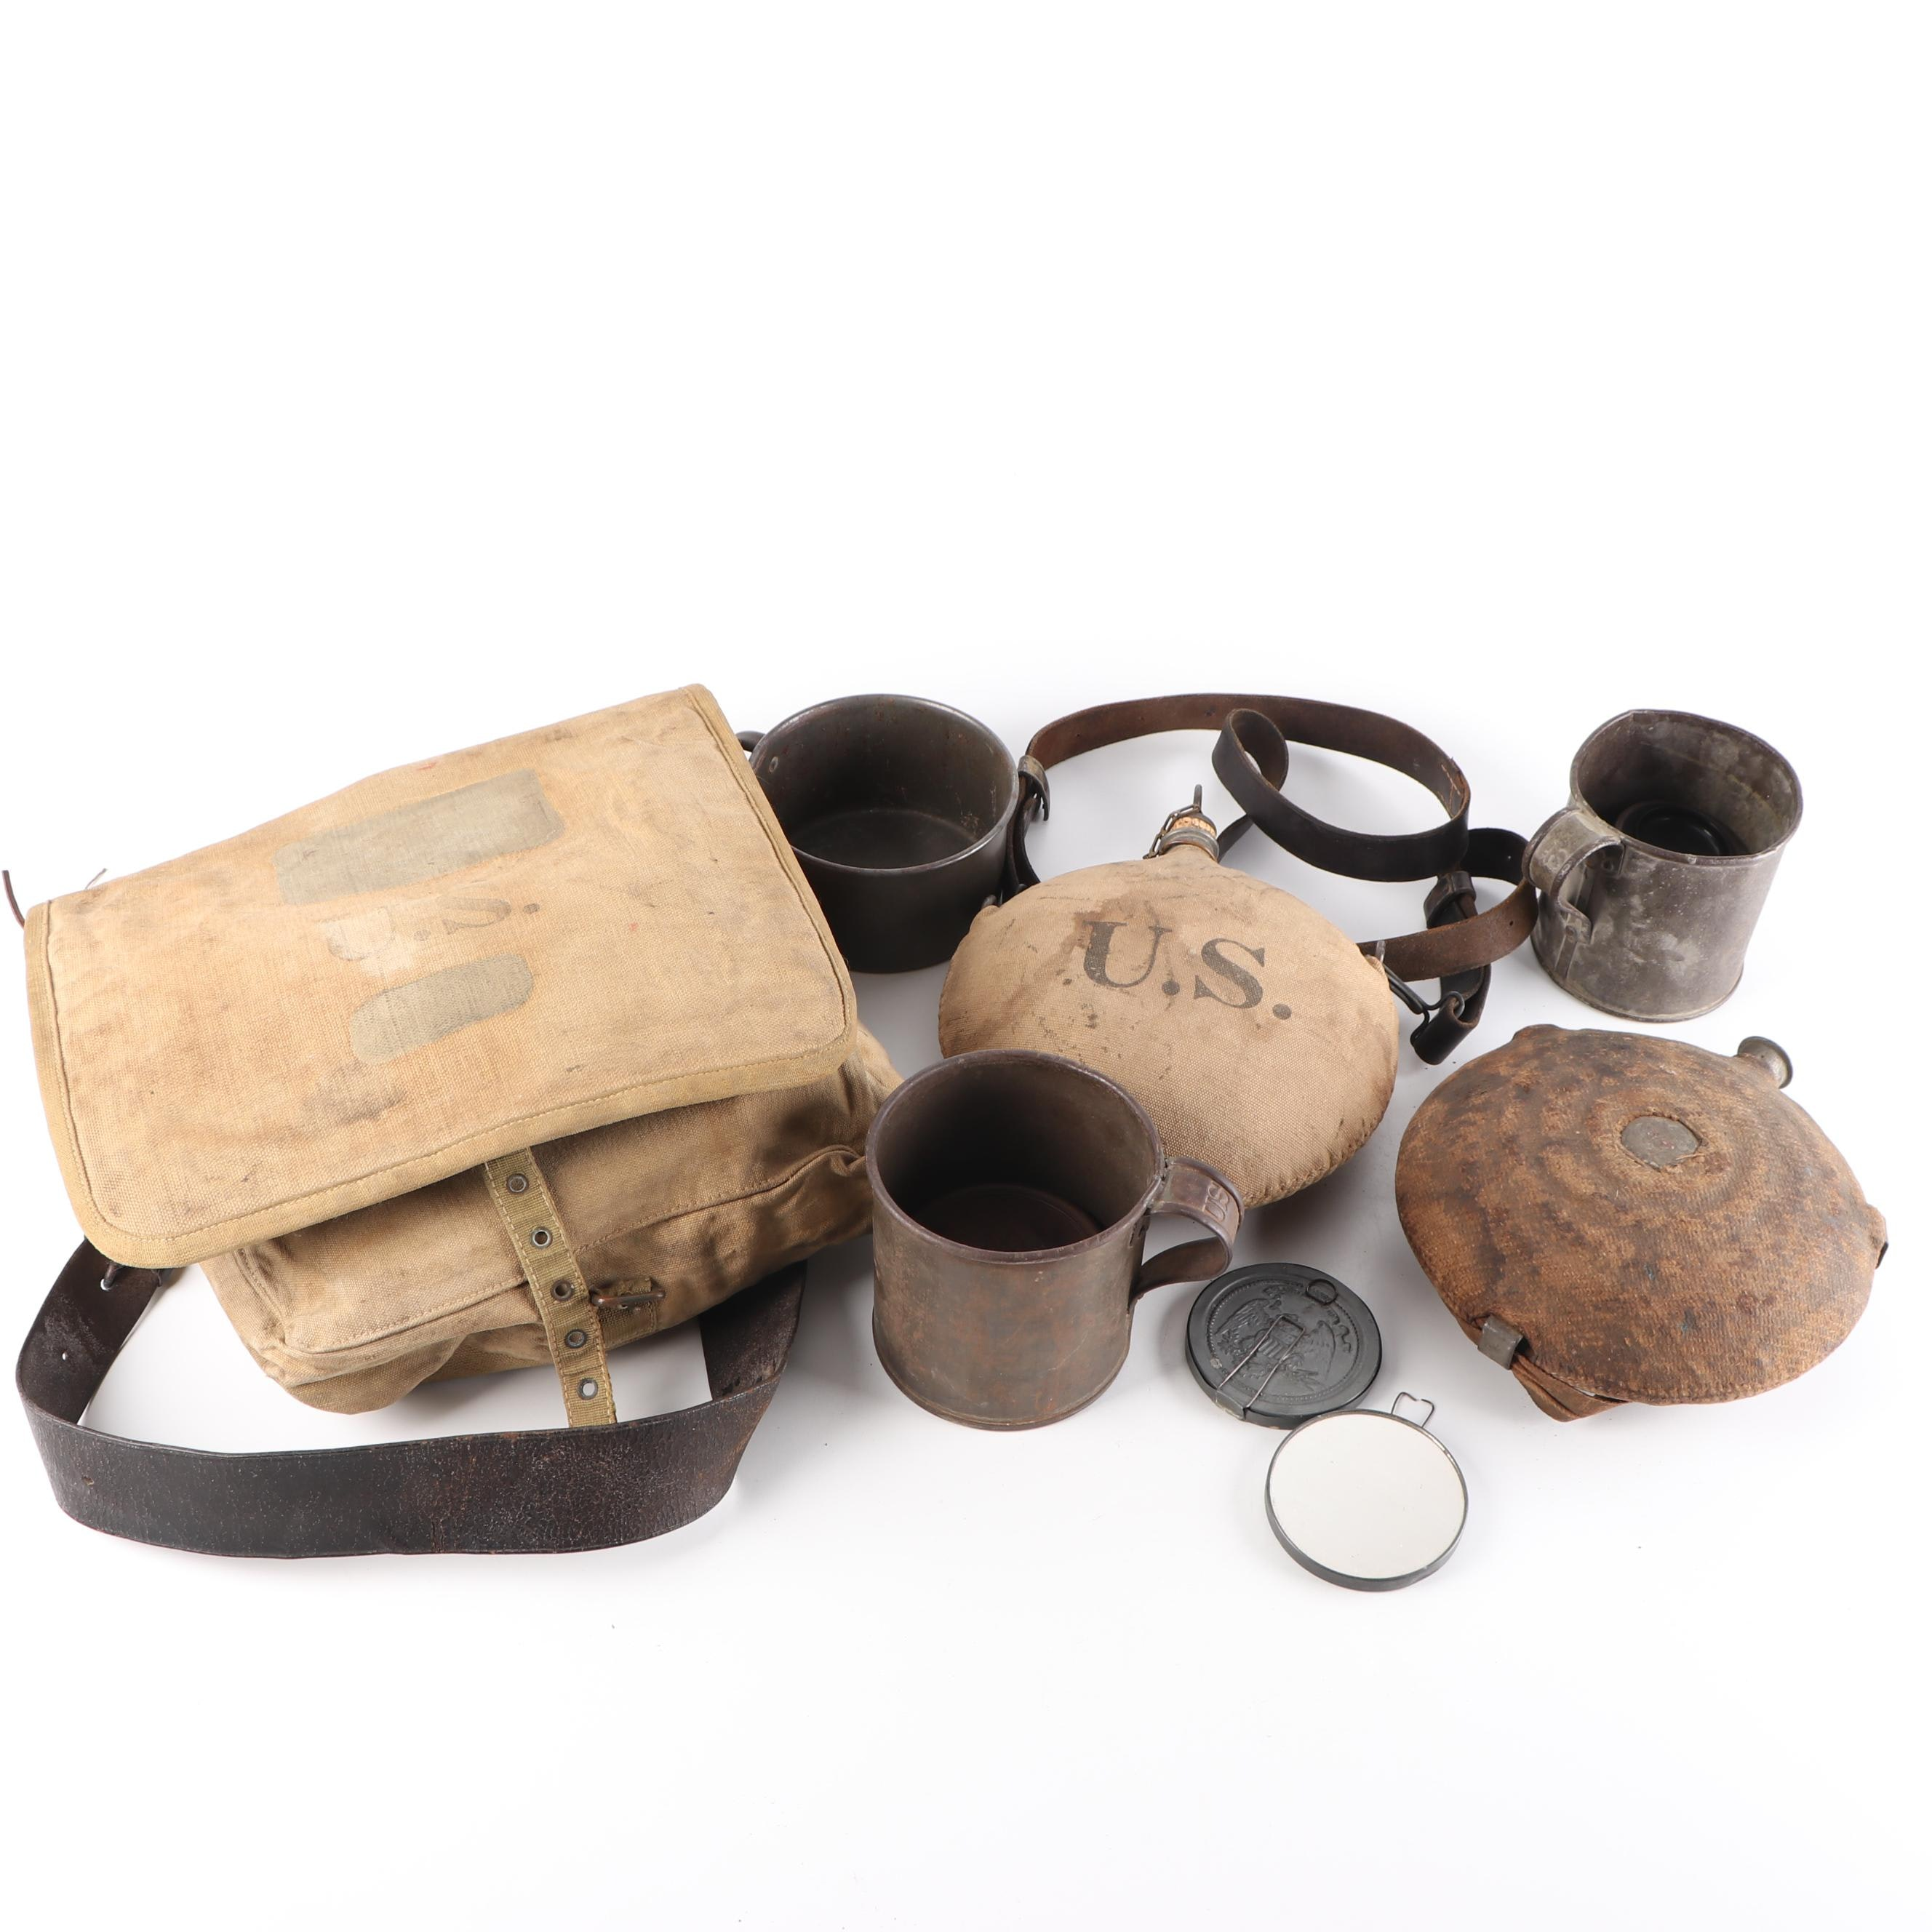 U.S. Army Field Mess Equipment with Canteens, Late 19th to Early 20th Century